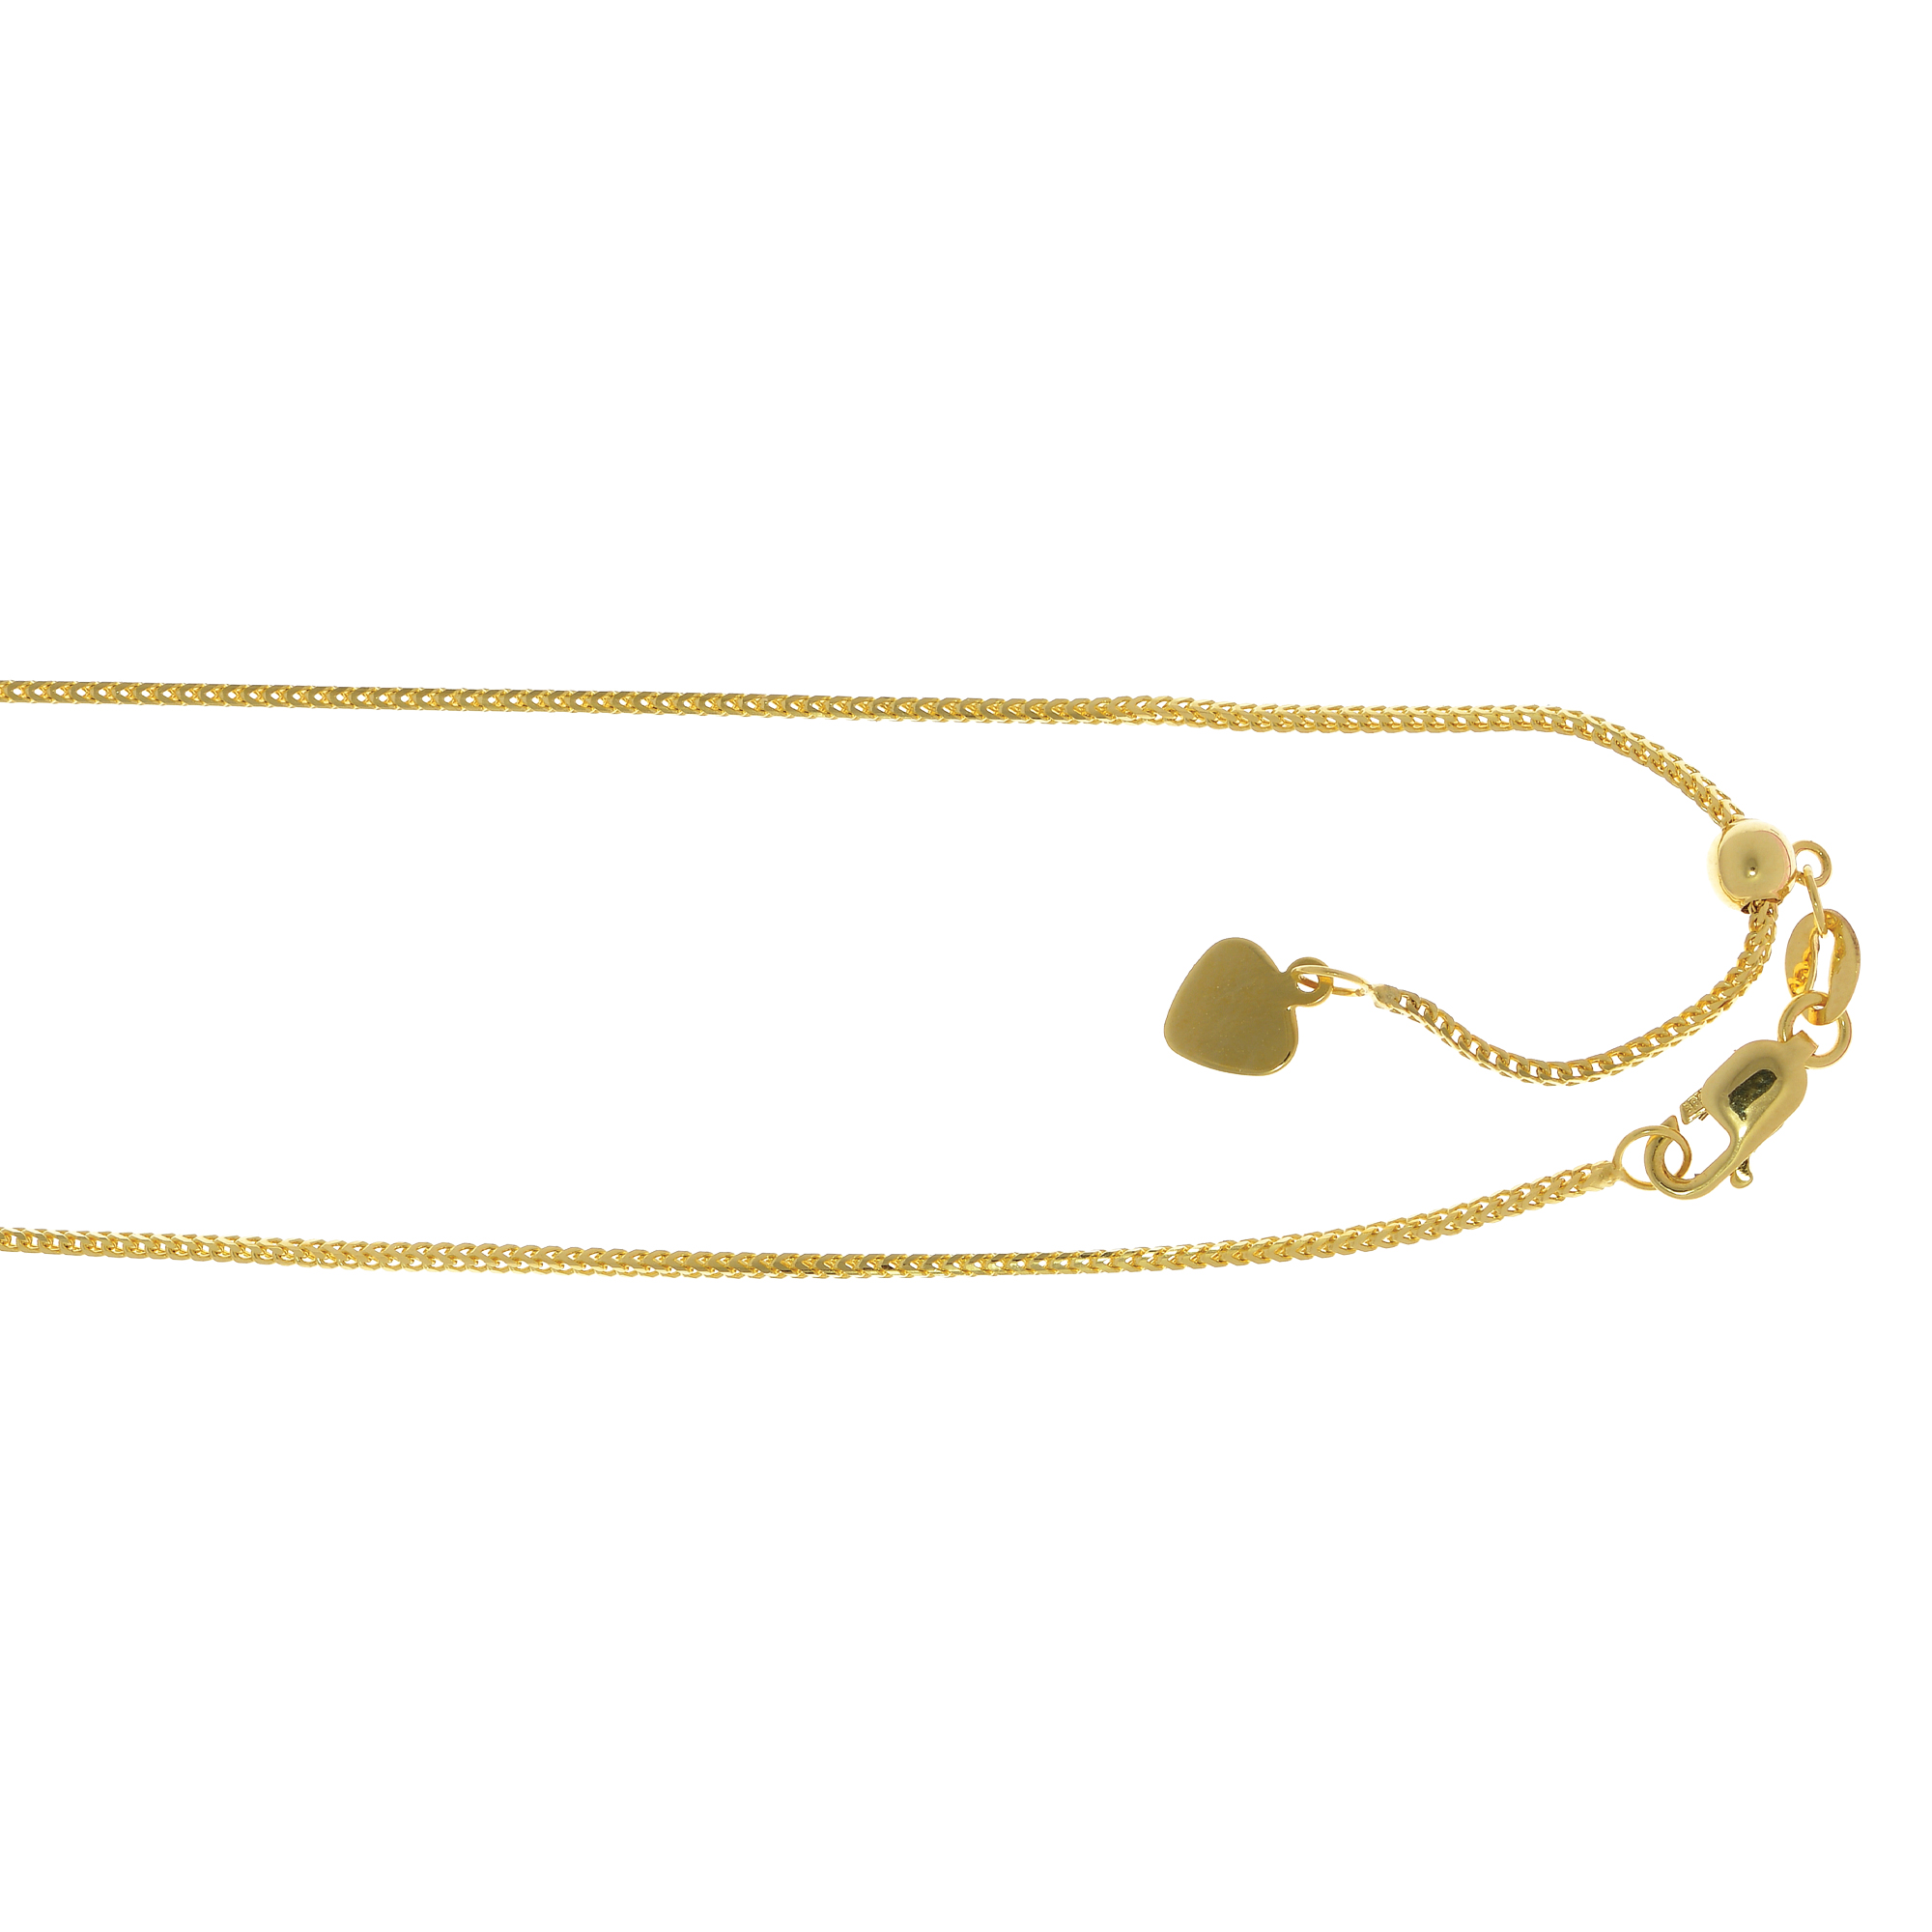 LUXURMAN Solid 14k Gold Franco Chain For Women Adjustable 0.9mm Yellow Image